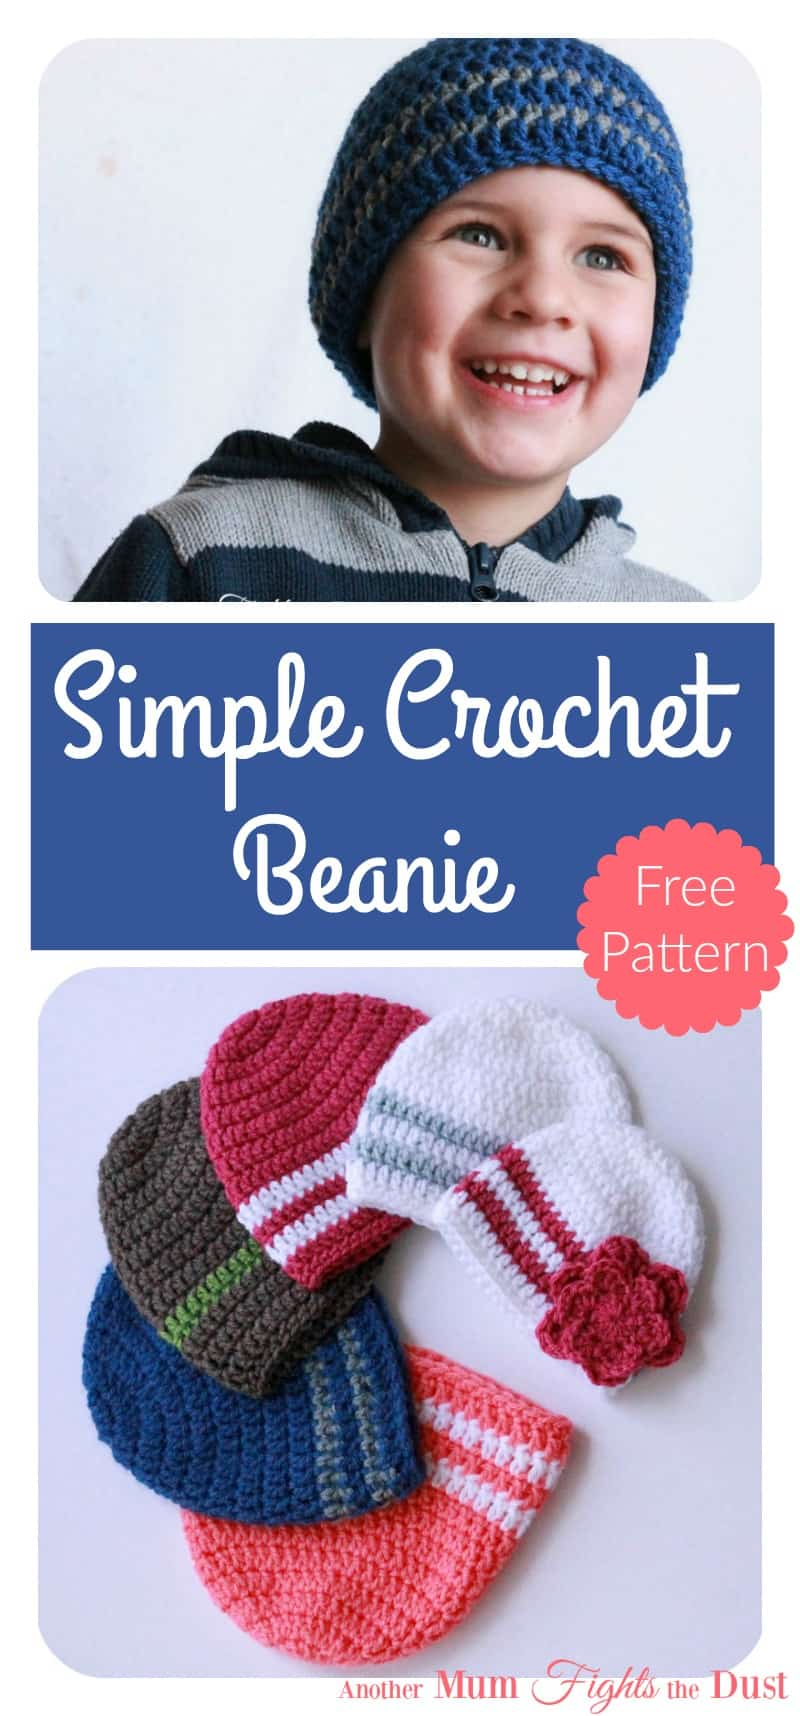 Free Crochet Pattern   Easy Crochet Hat Pattern   Crochet Beanie Pattern 84637c8e645